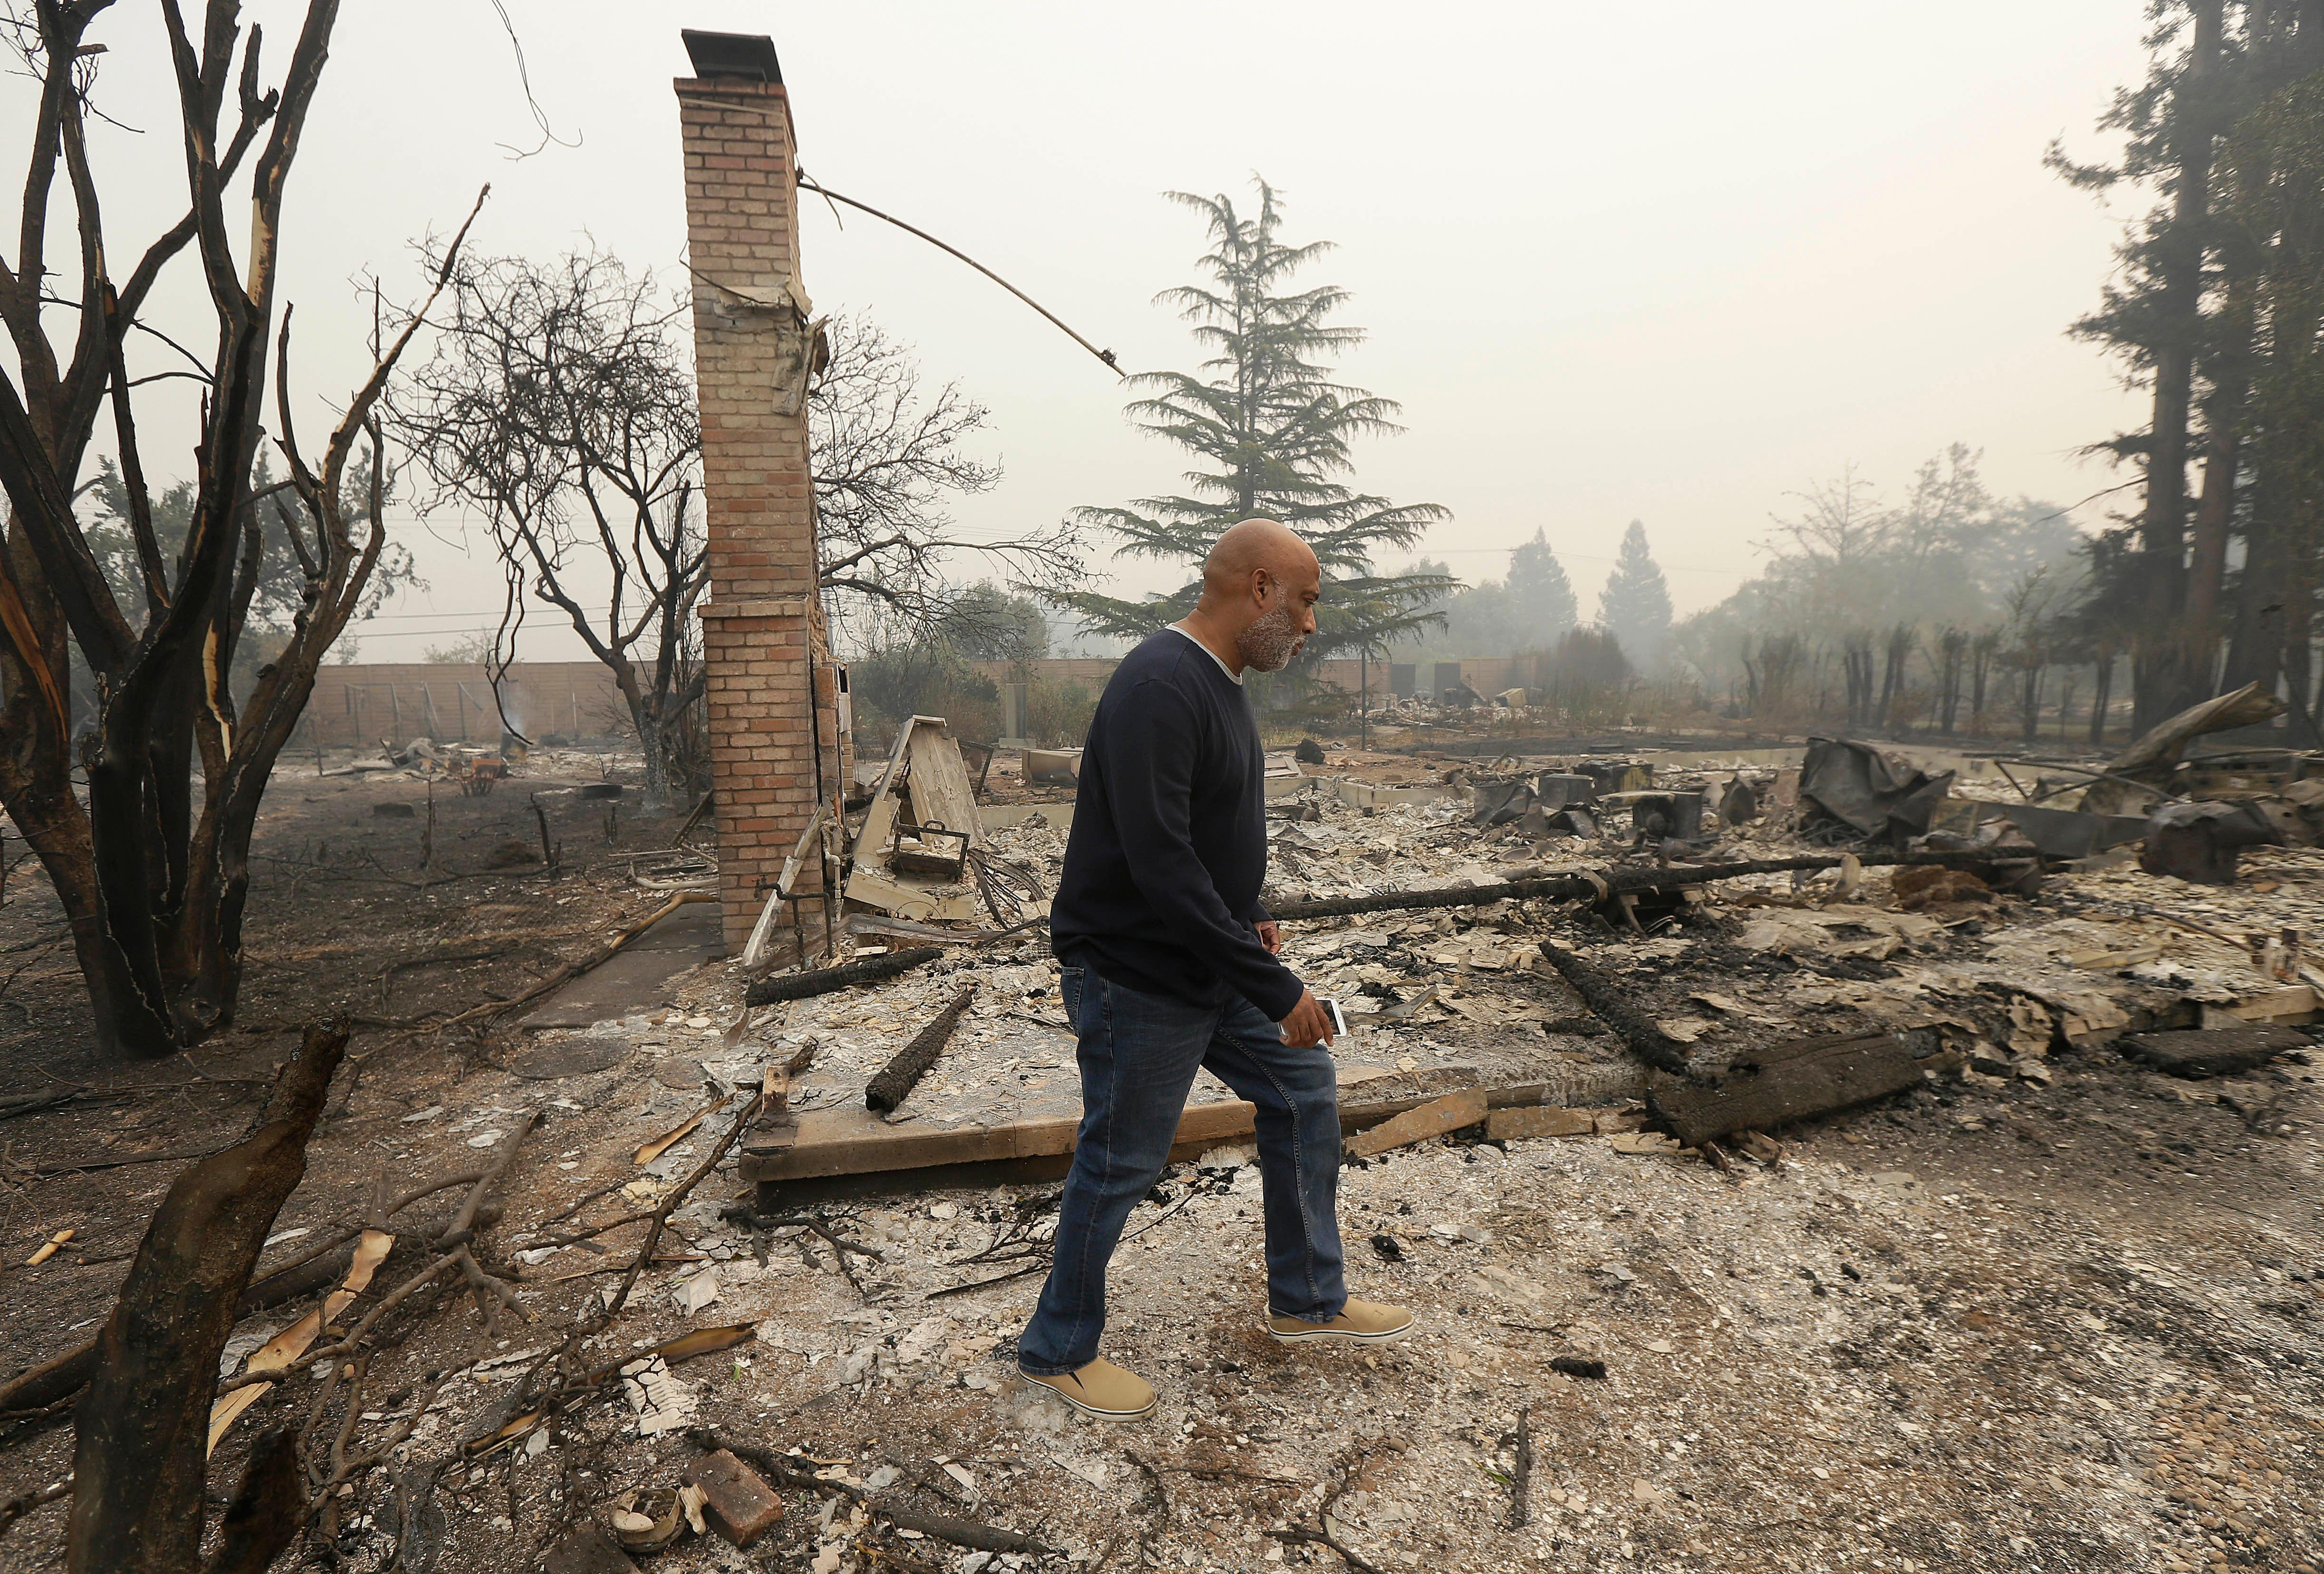 Darrel Spain walks through the remains of his house destroyed from fires as he and his husband look for their missing cat in Kenwood, Calif., Tuesday, Oct. 10, 2017. (AP Photo/Jeff Chiu)